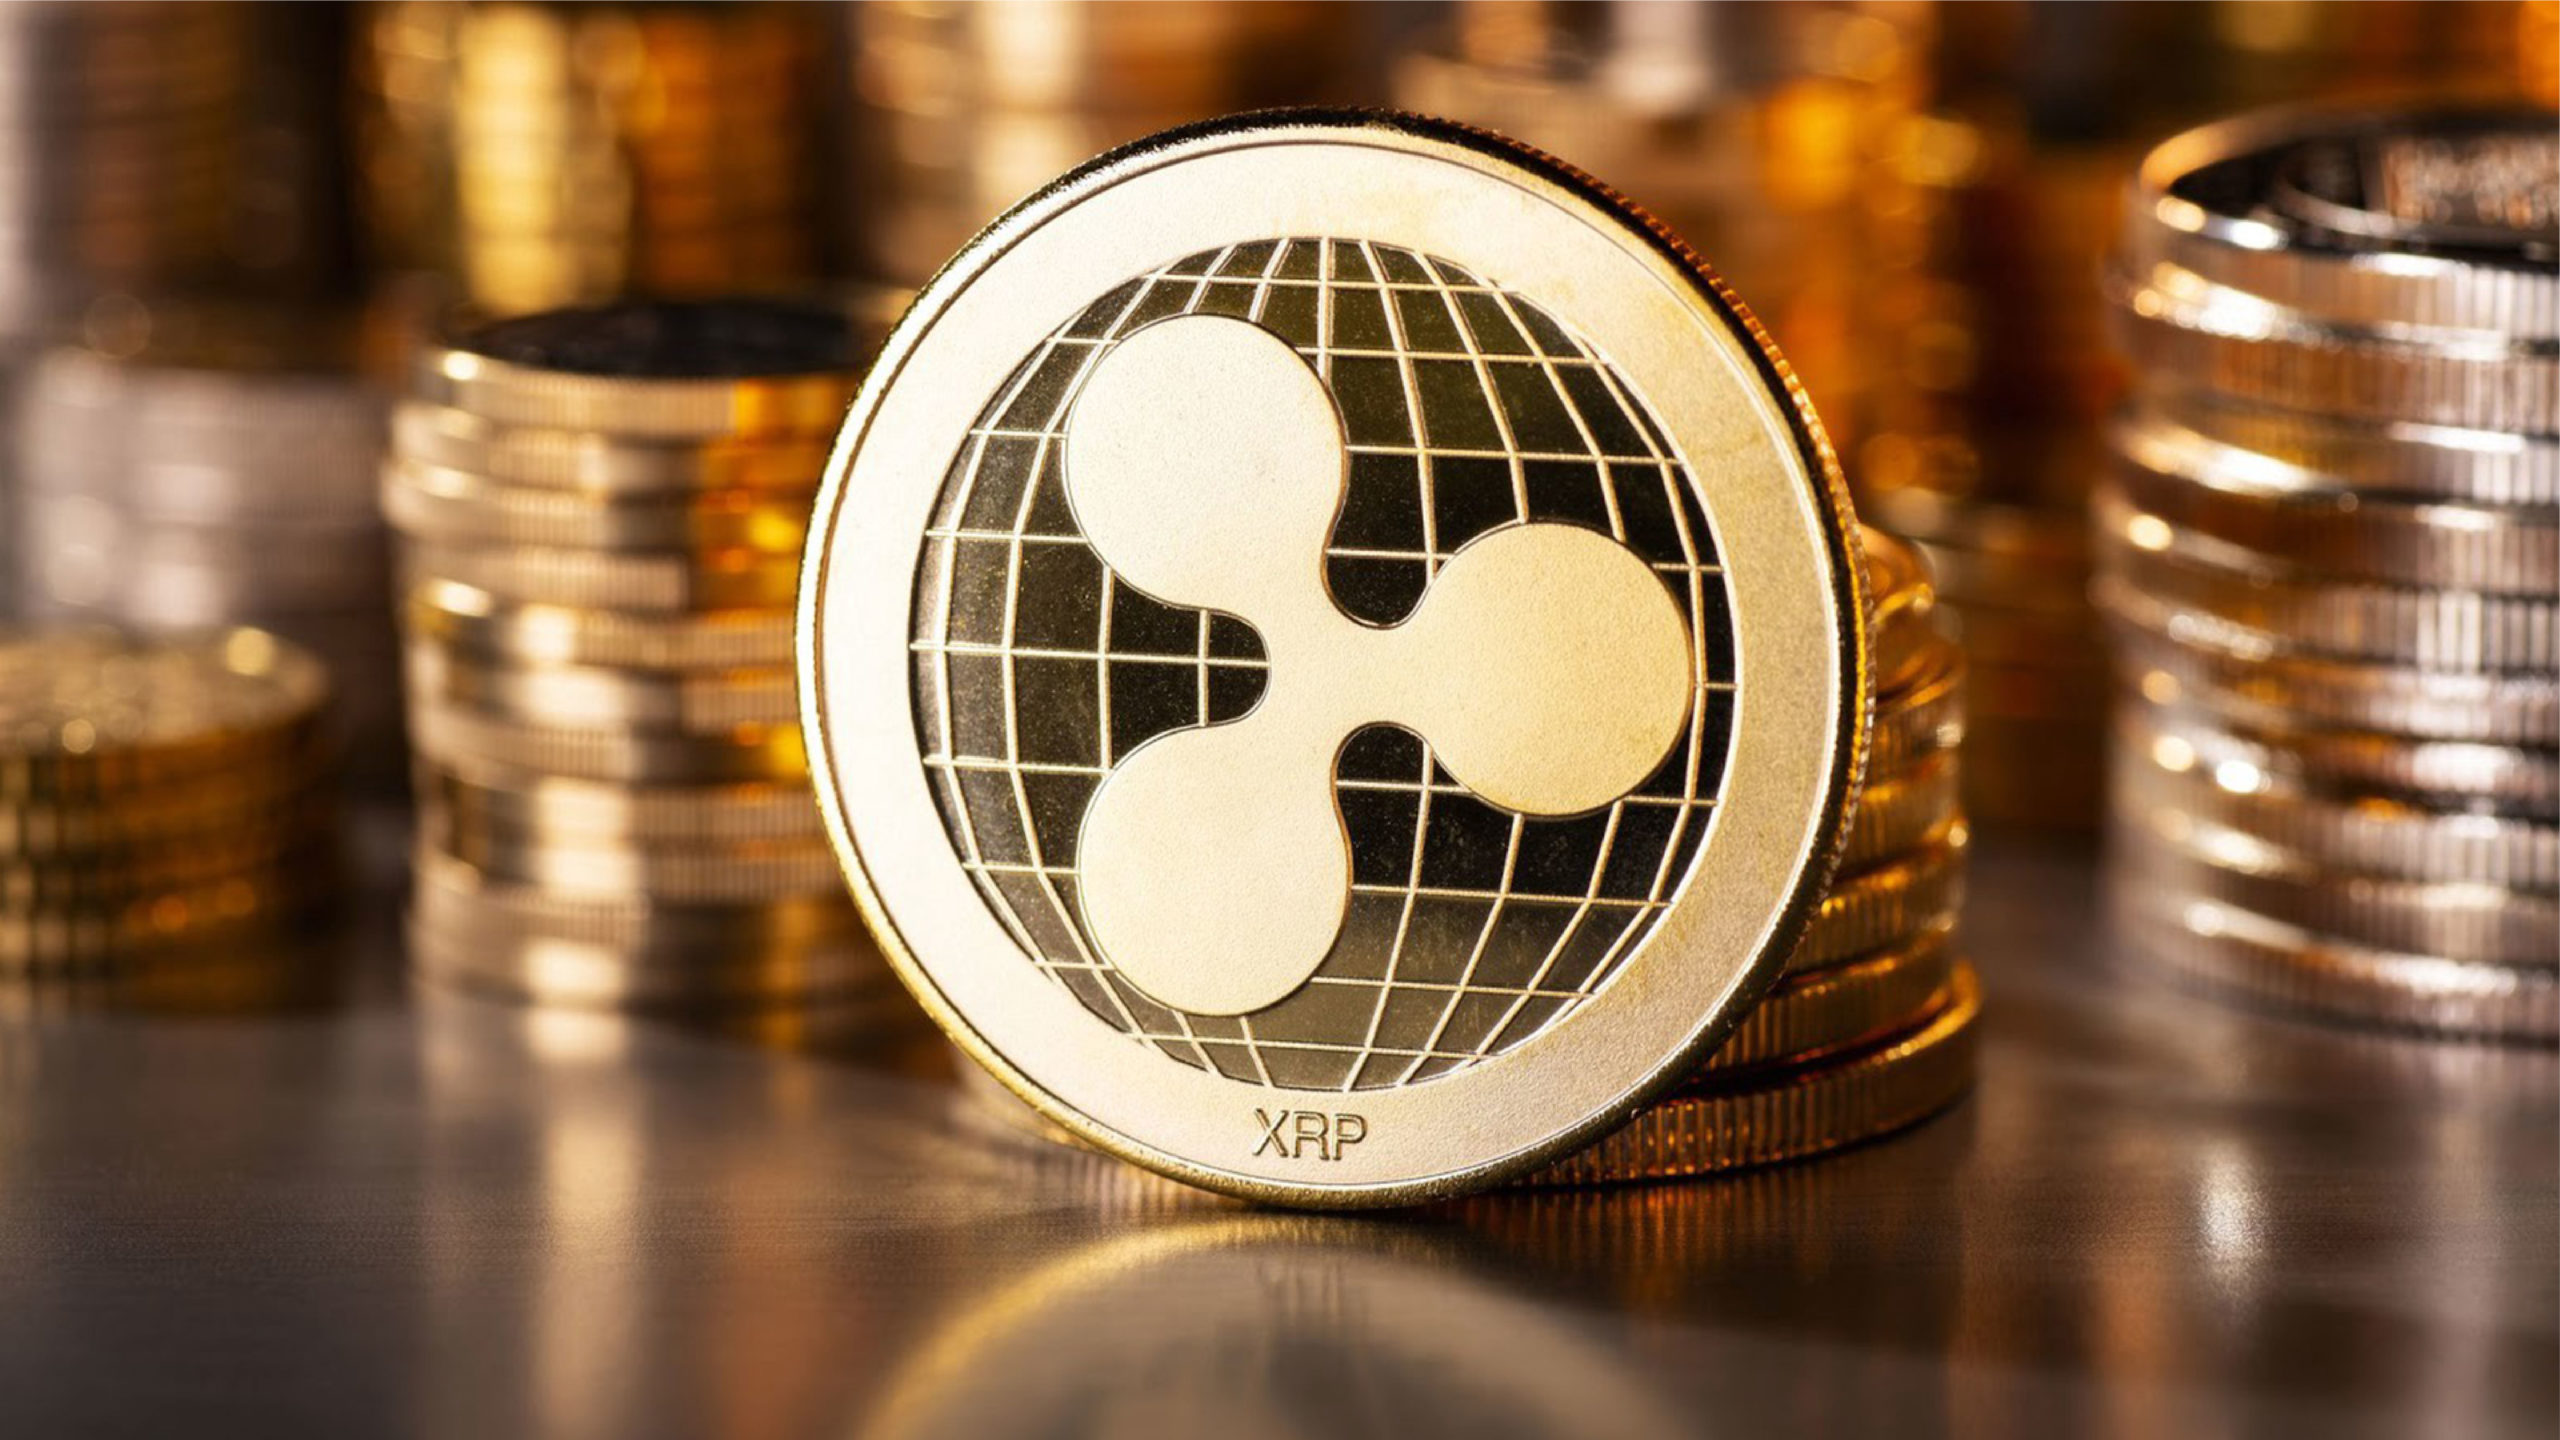 SEC plans to sue Ripple over XRP Sales. XRP is now the third largest cryptocurrency by market cap, with a market valuation at $23 billion.